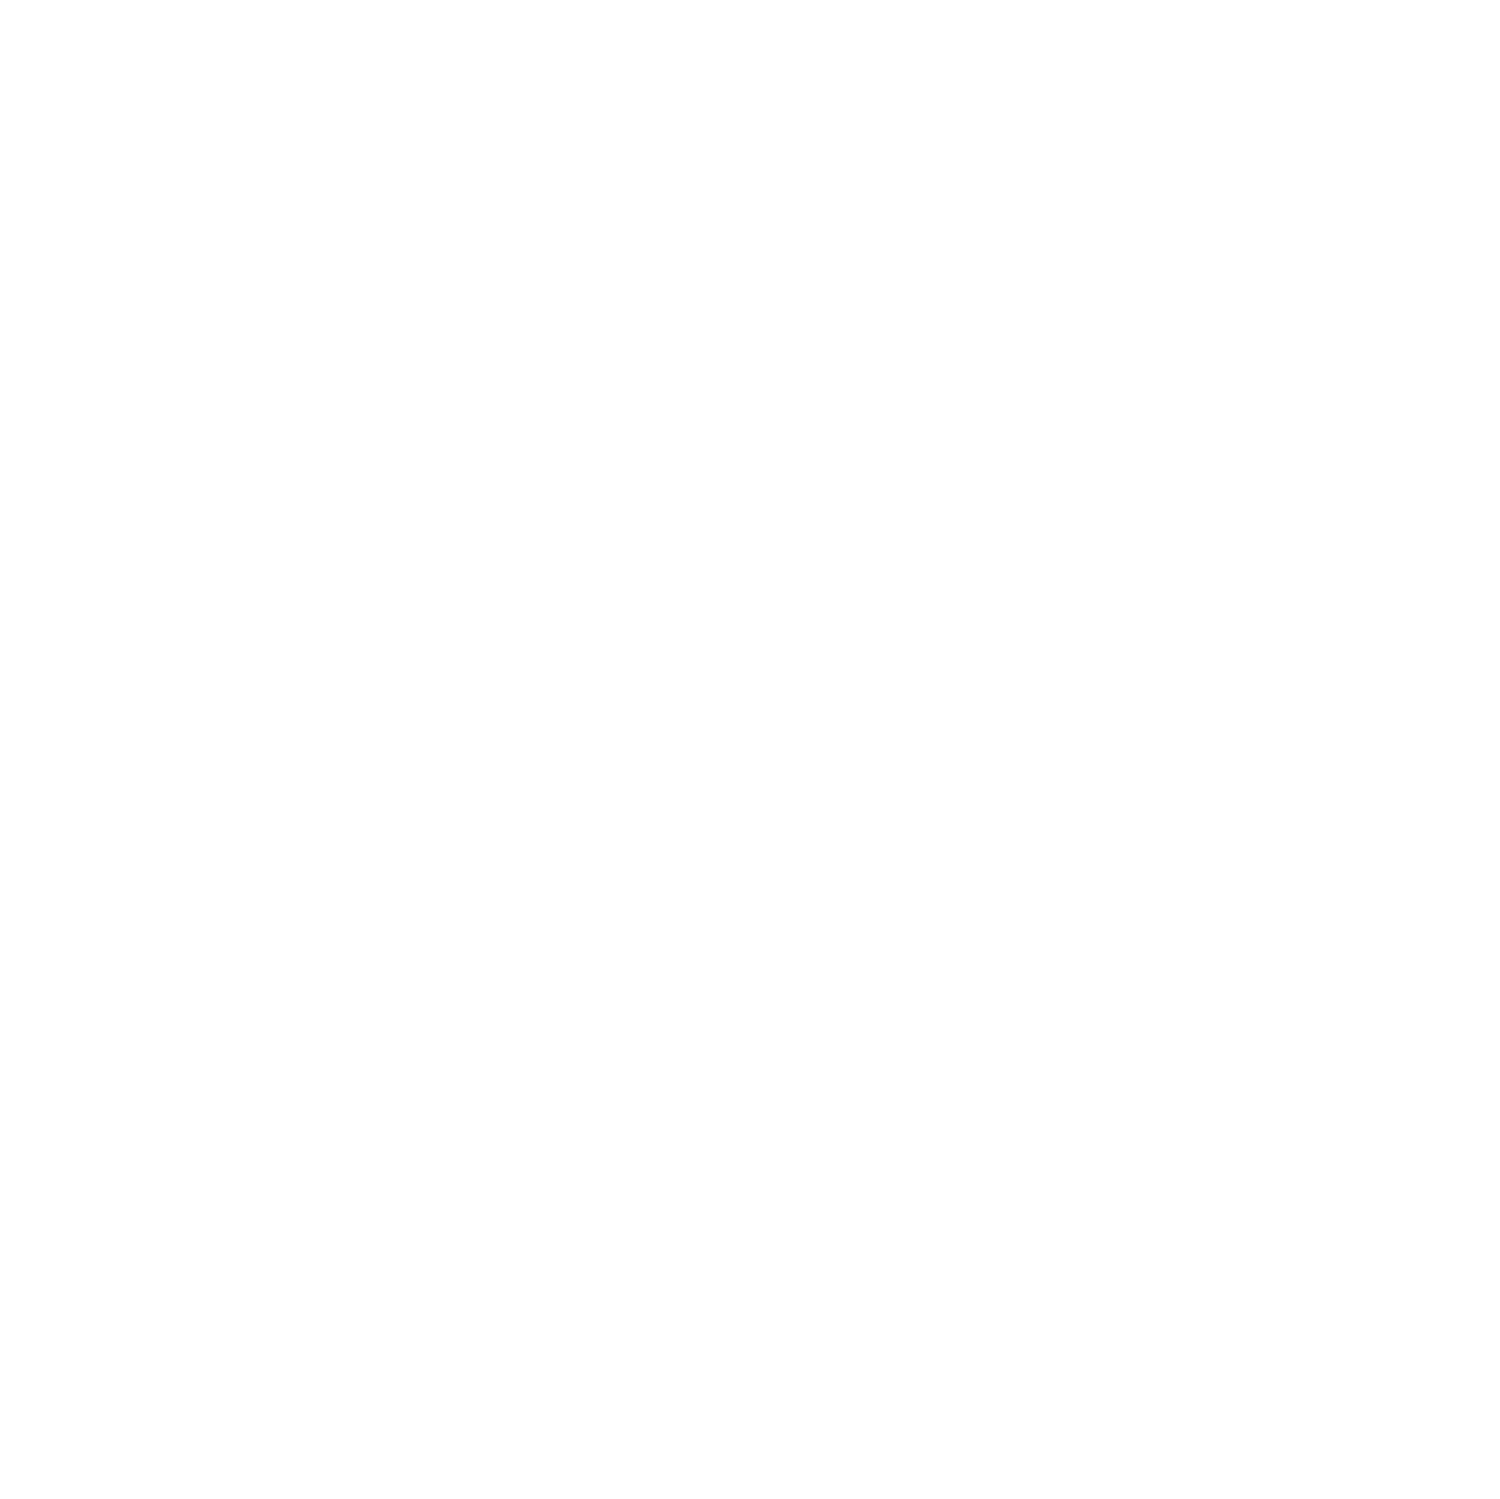 Chasecamp